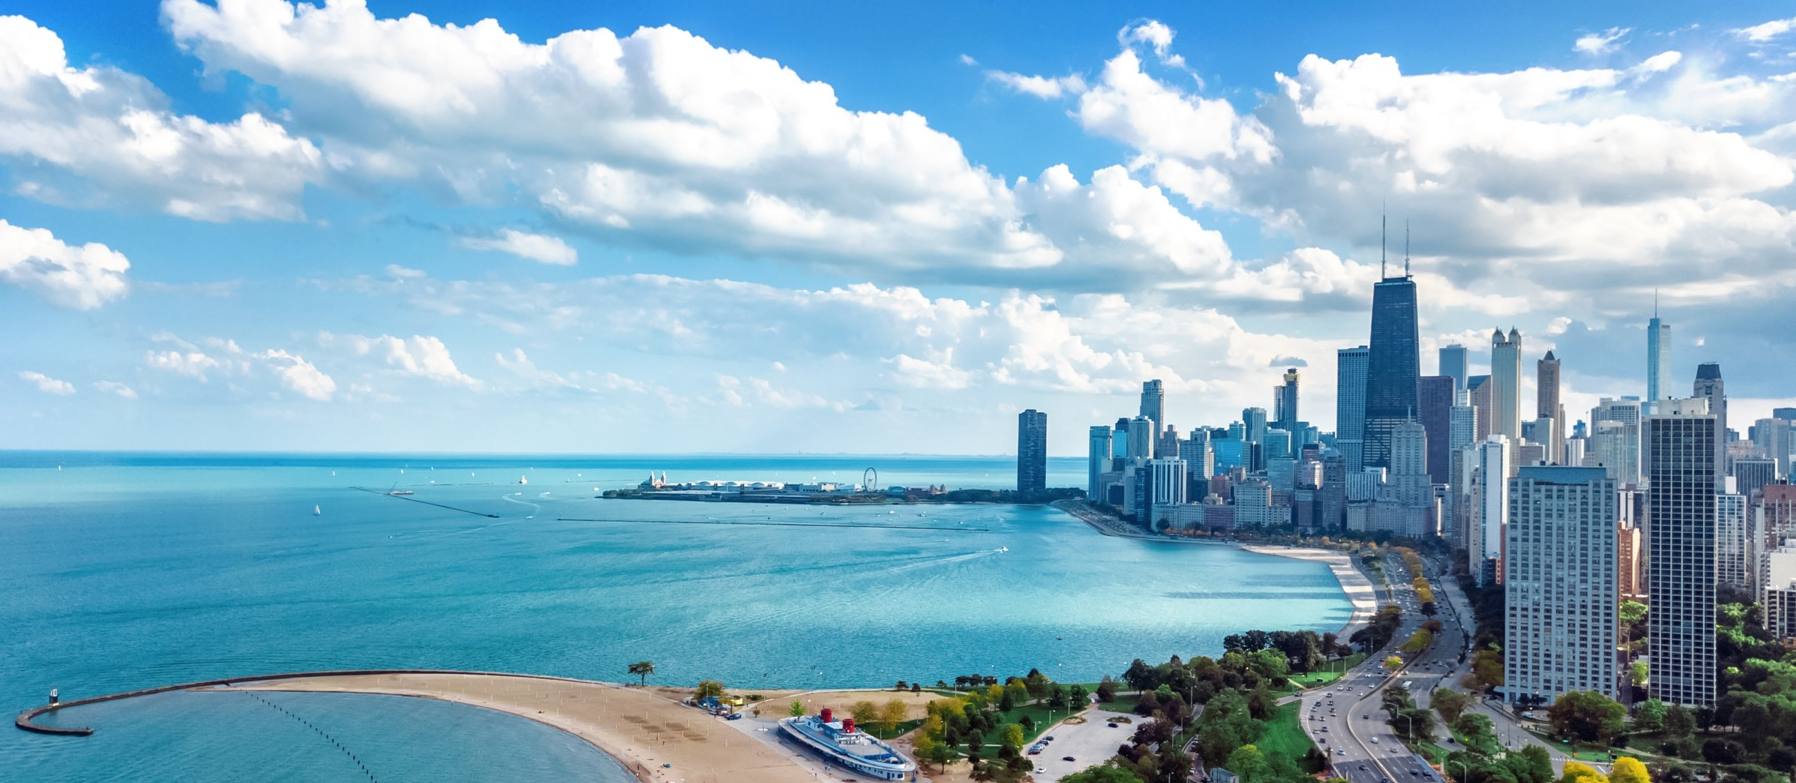 Condé Nast Traveler Readers Vote Chicago As Best Large City For Fourth Consecutive Year